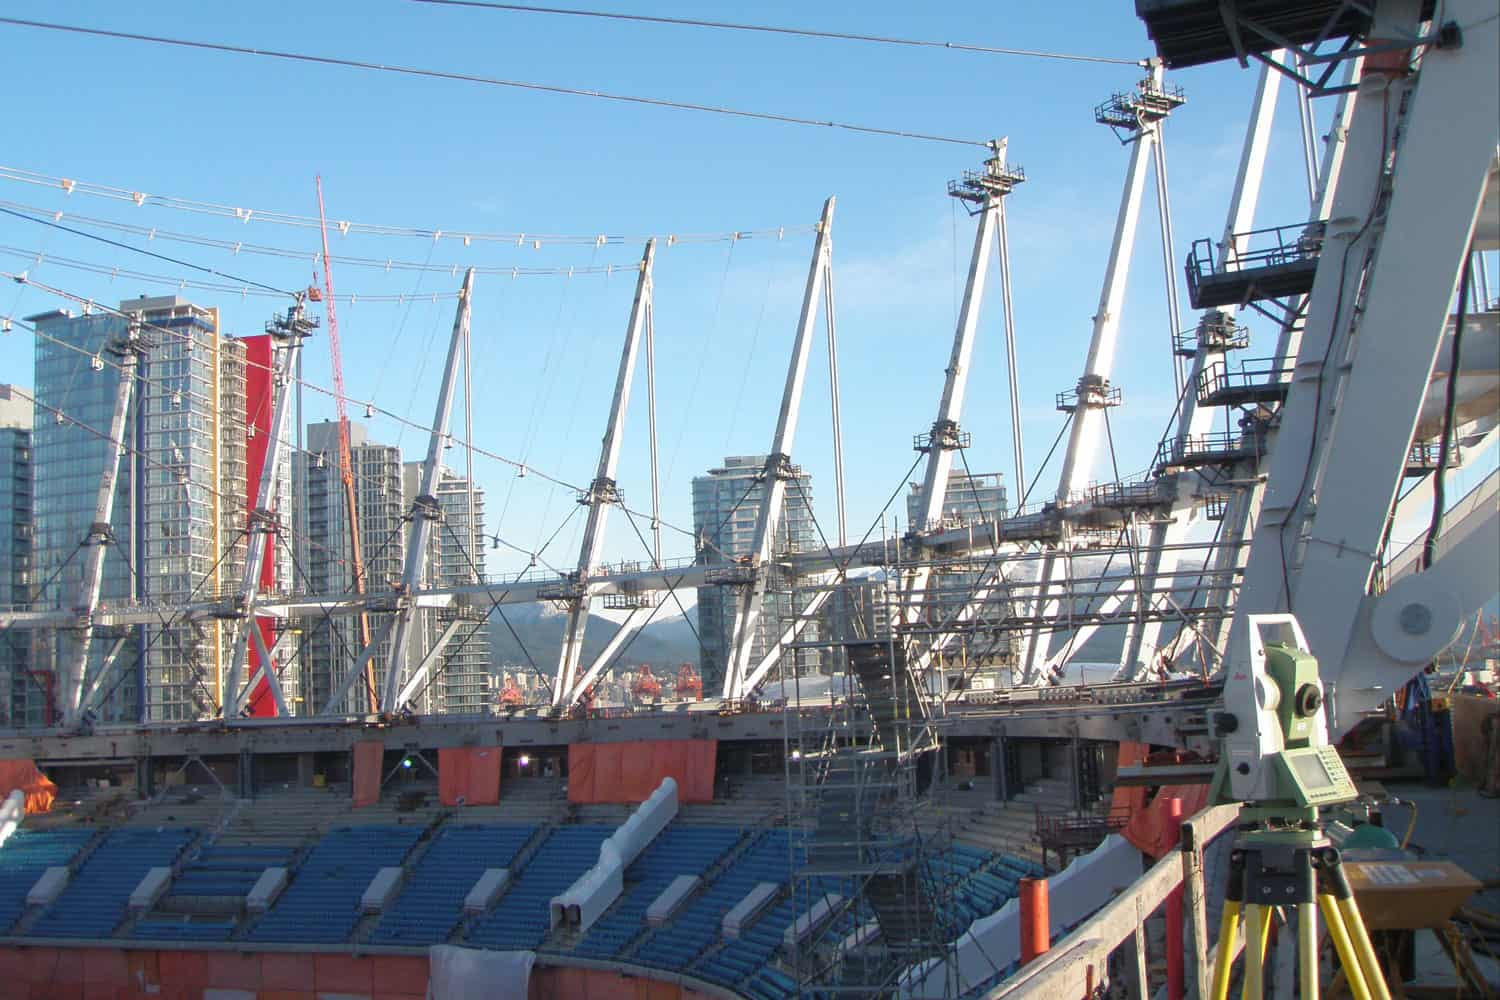 "Reflectorless Leica 1"" Total Station used in positioning the masts of the new BC Place roof, 2011"